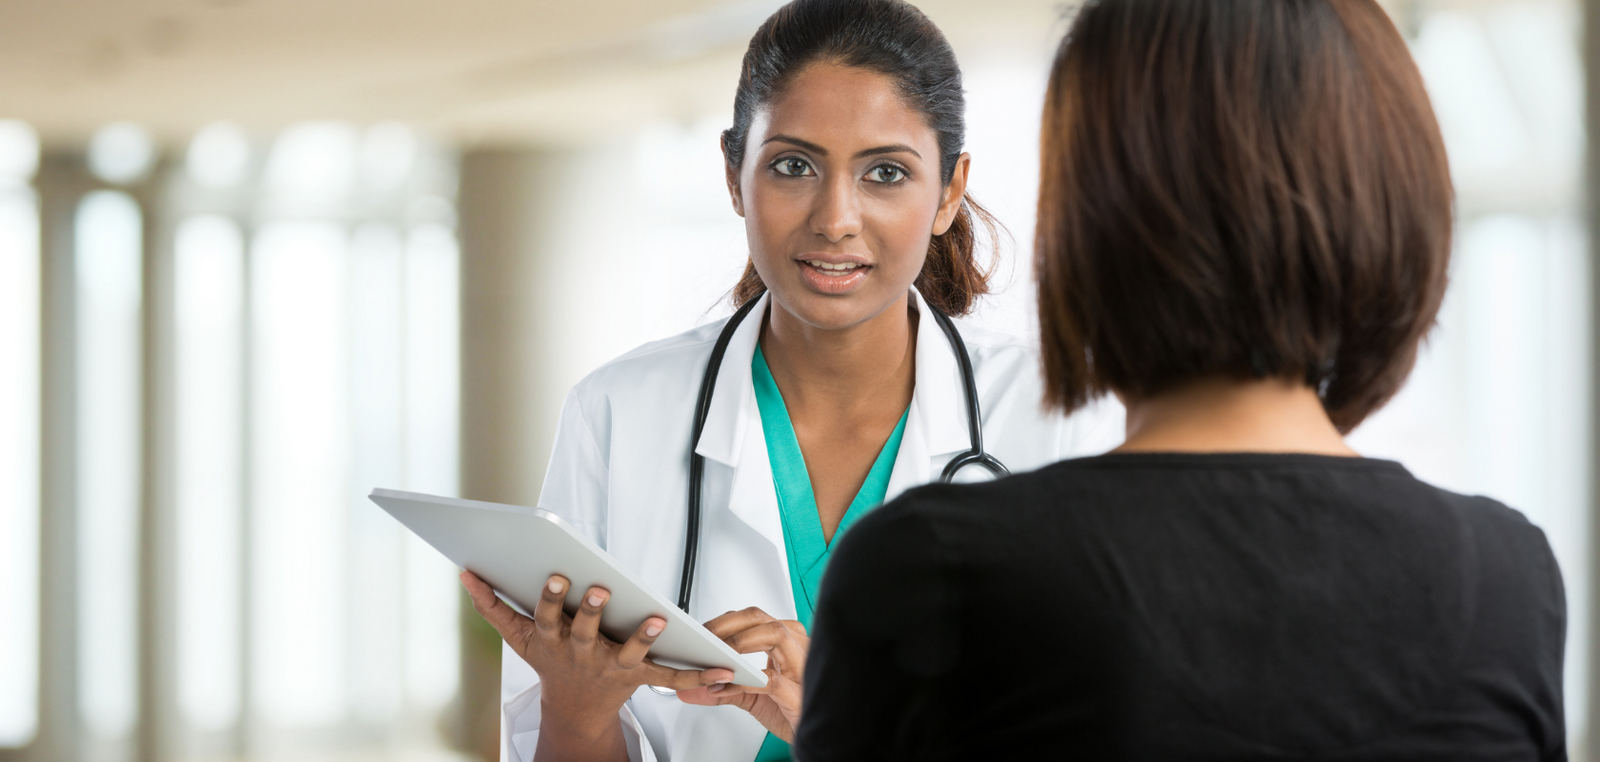 Doctor holding a chart and speaking with a patient